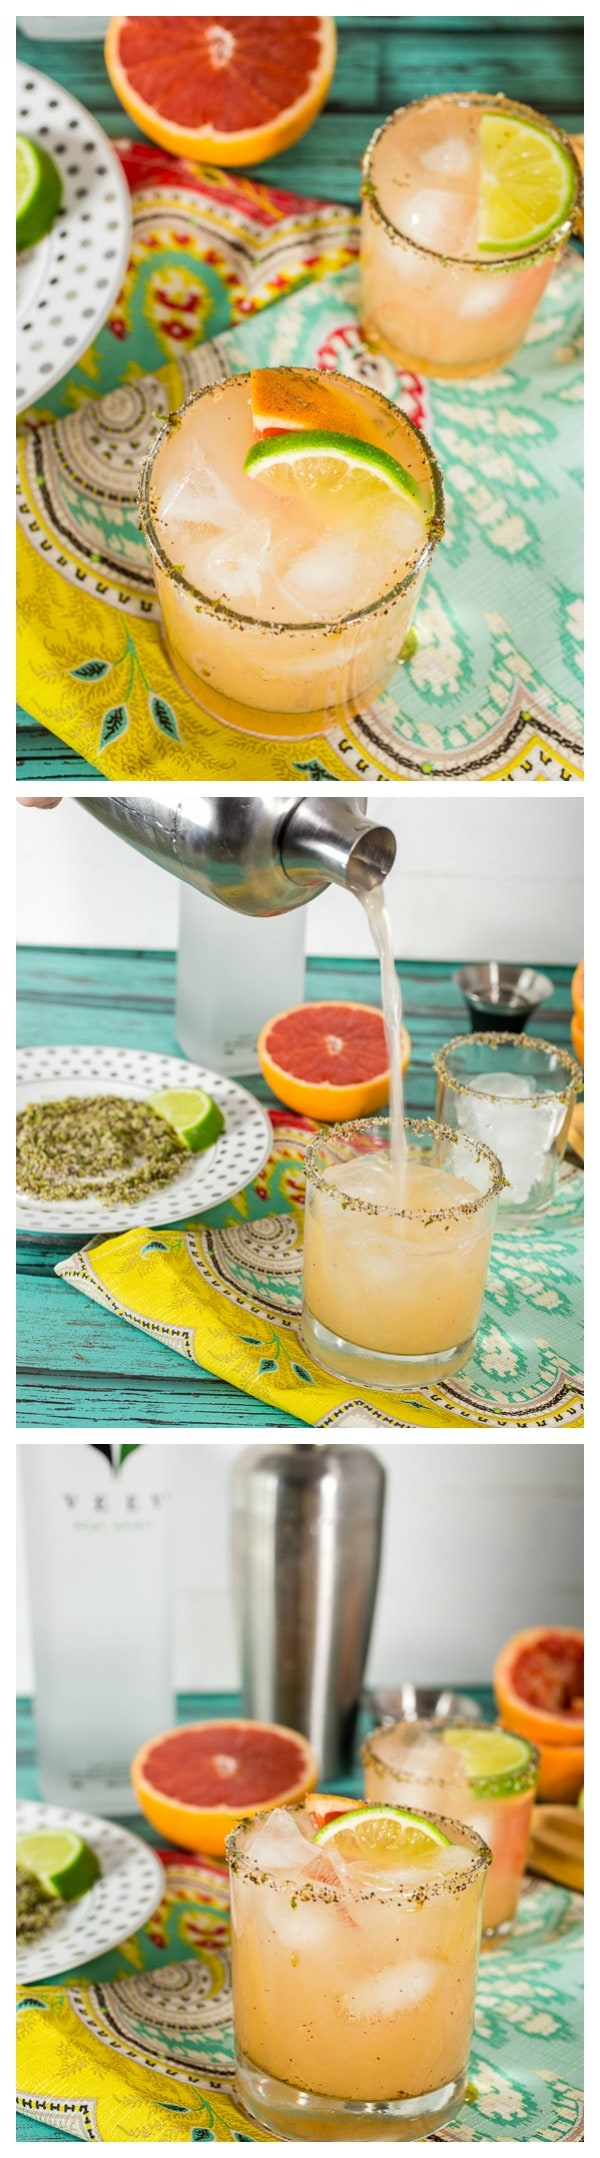 Grapefruit Margarita with Chili Lime Rim | girlinthelittleredkitchen.com